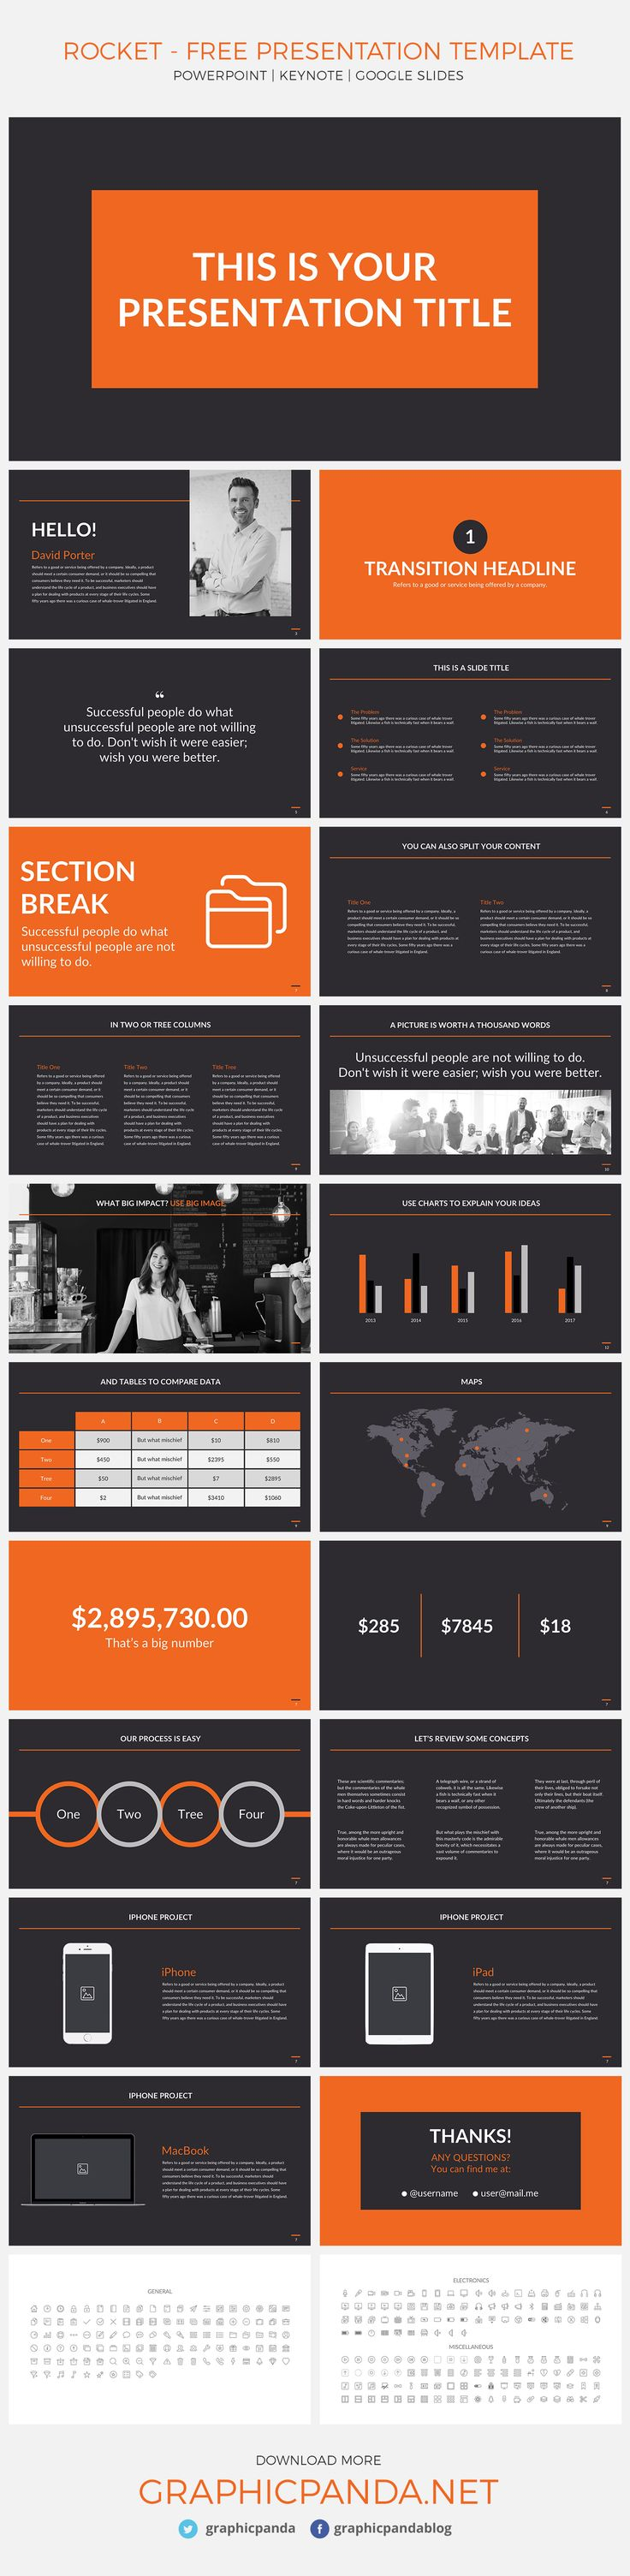 47 best FREE POWERPOINT TEMPLATES, FREE KEYNOTES THEMES, FREE GOOGLE ...